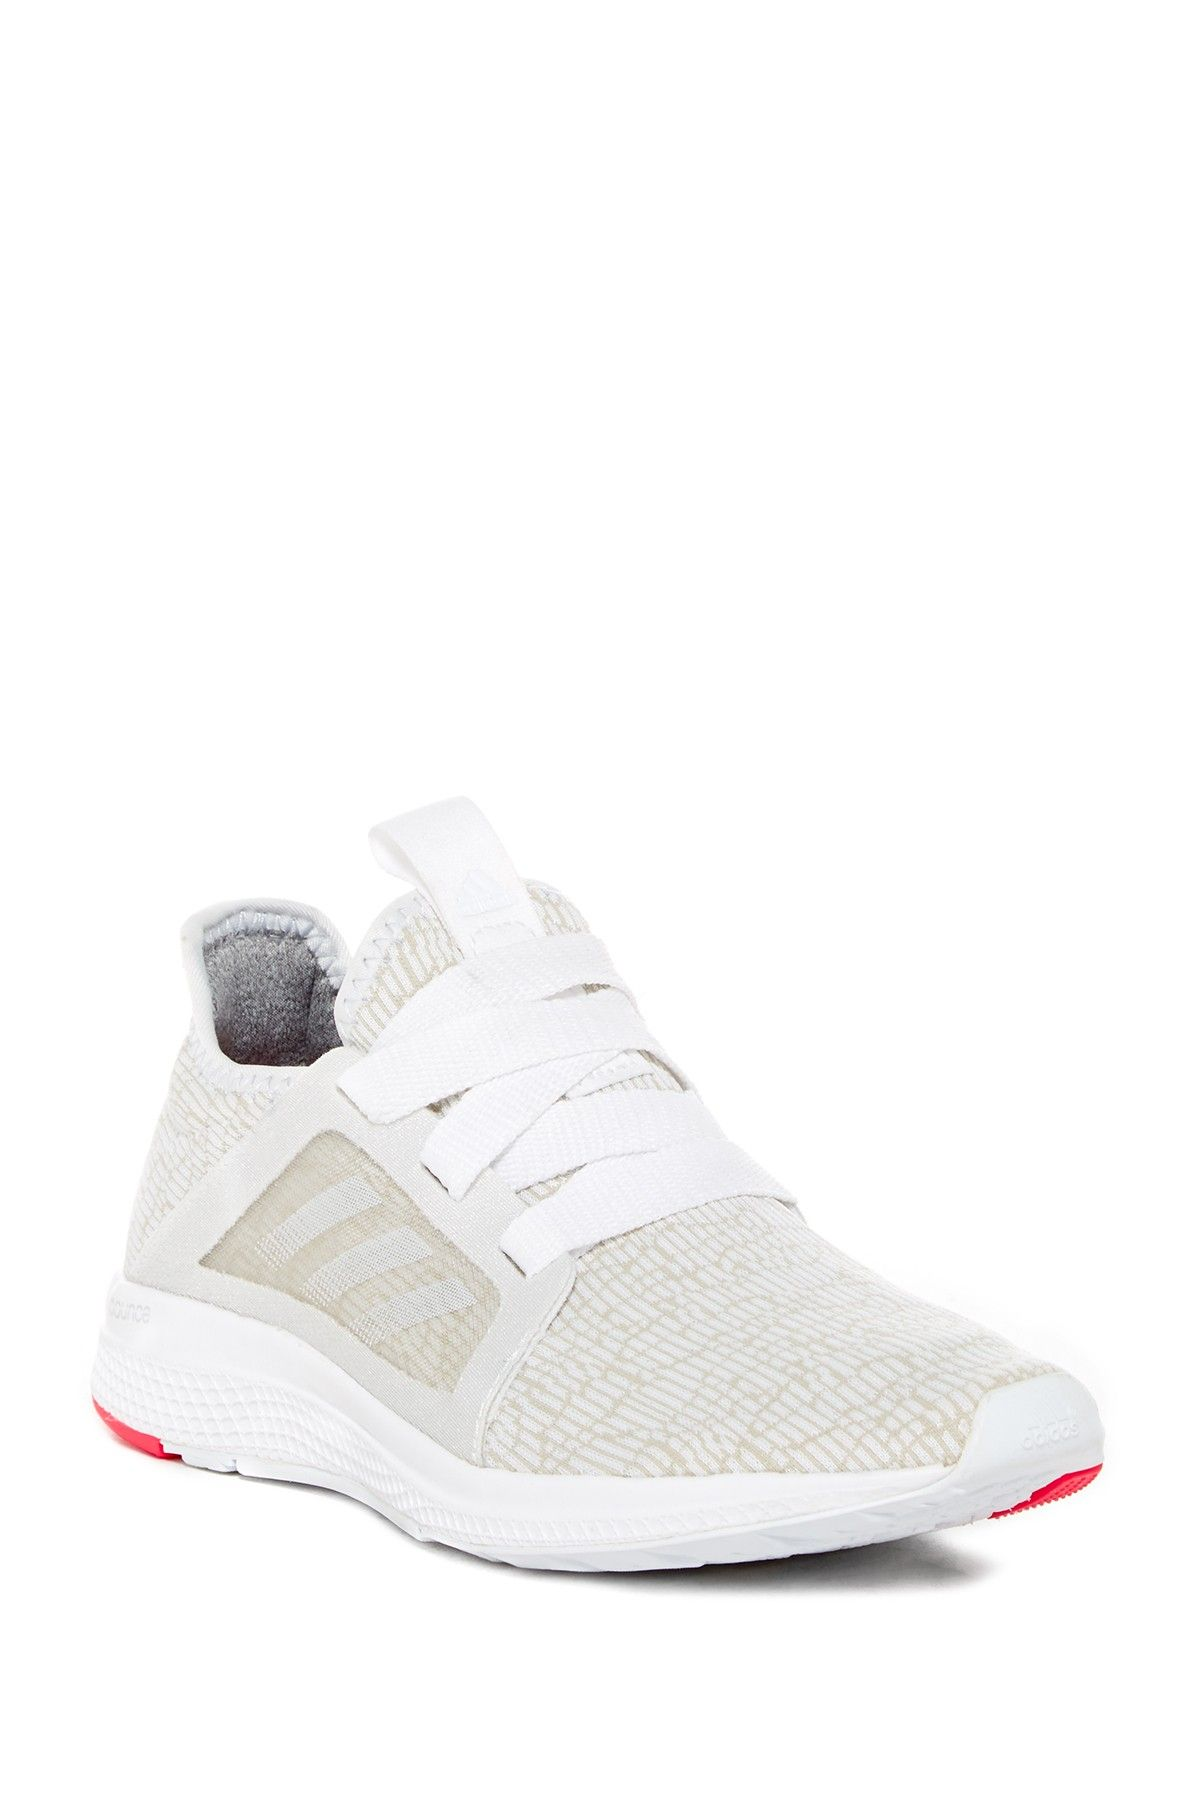 35364df3346 Edge Lux Running Shoe by adidas on  nordstrom rack